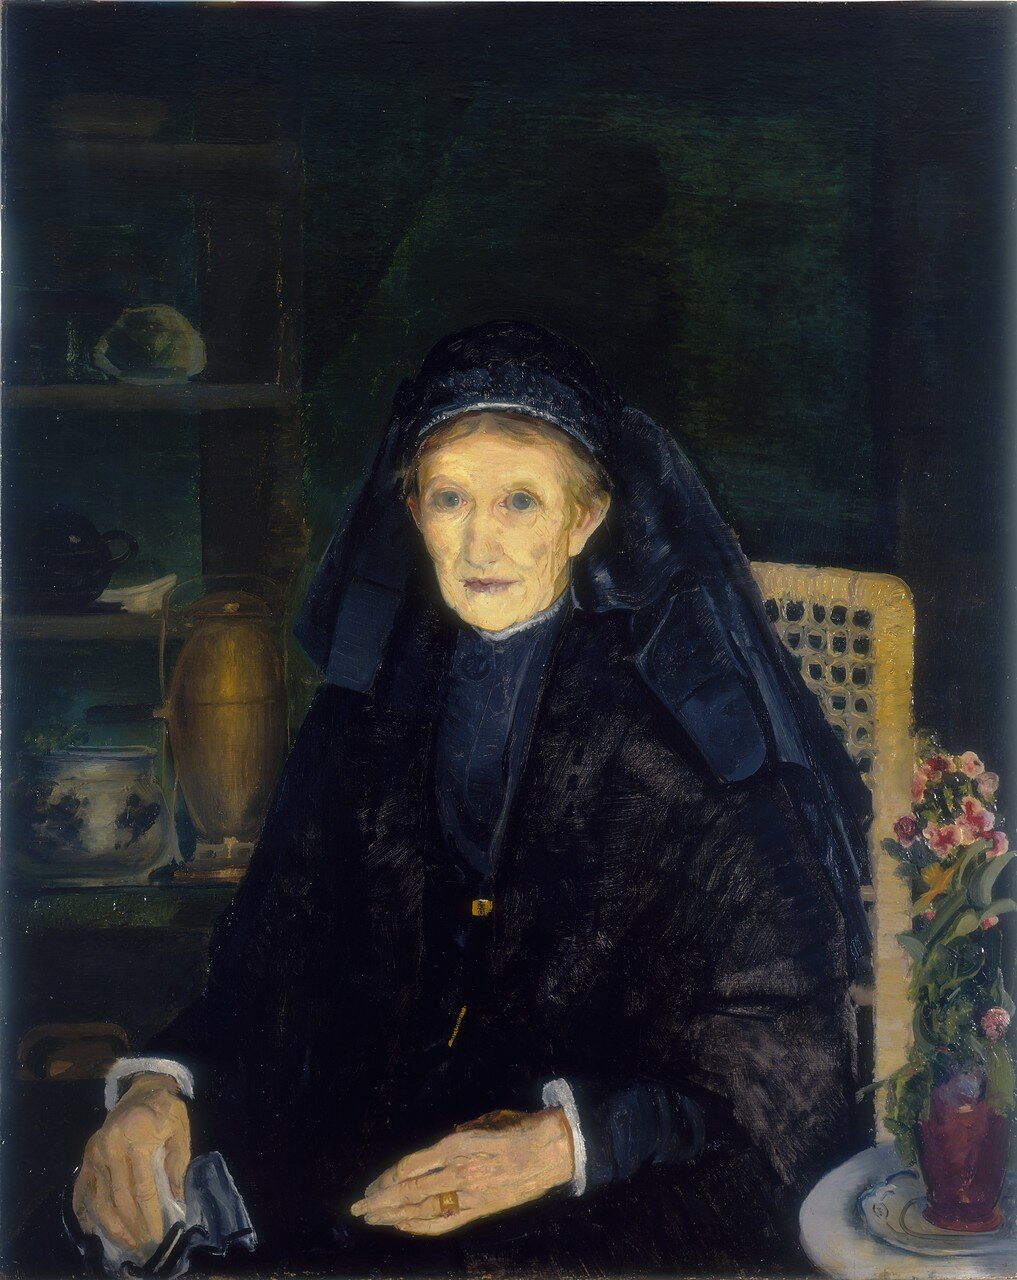 George_Bellows_-_The_Widow_(1917).jpg